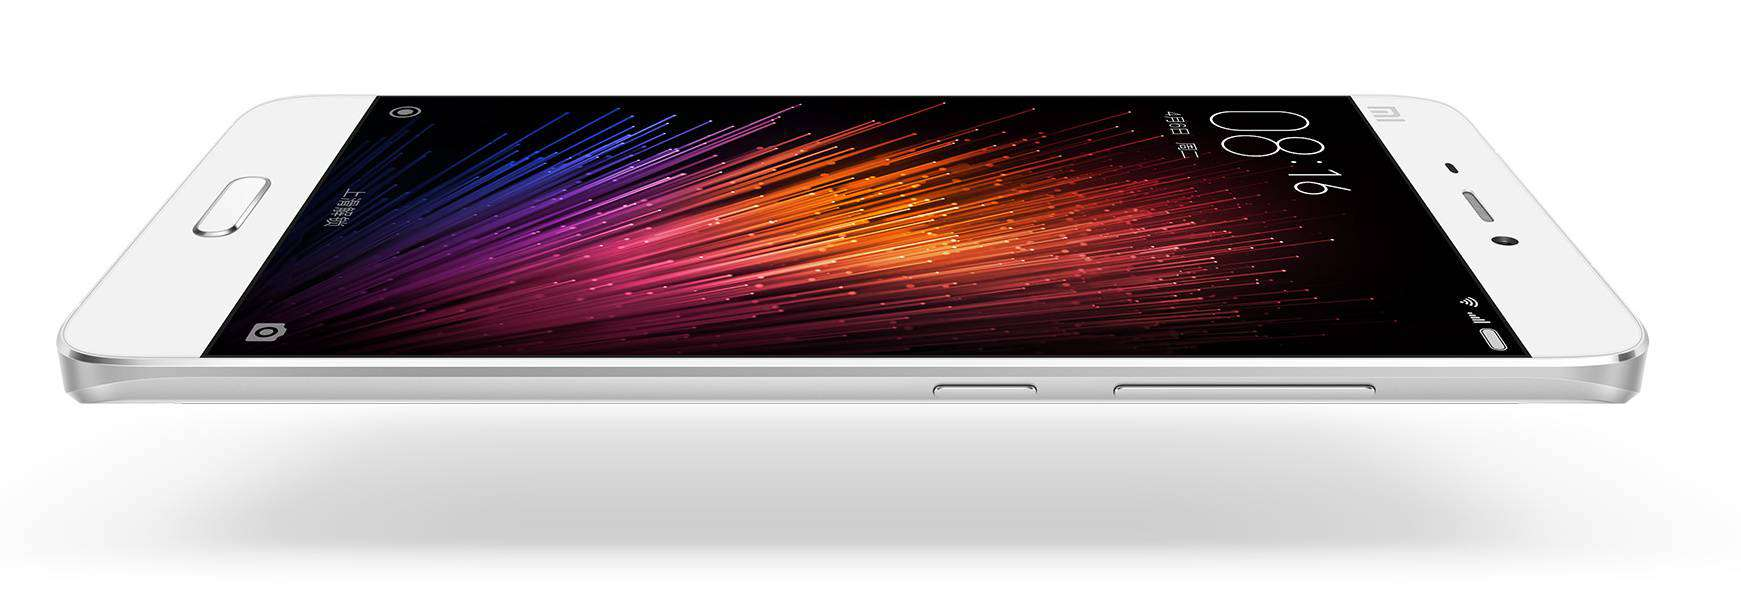 Xiaomi Mi 5 official image 25